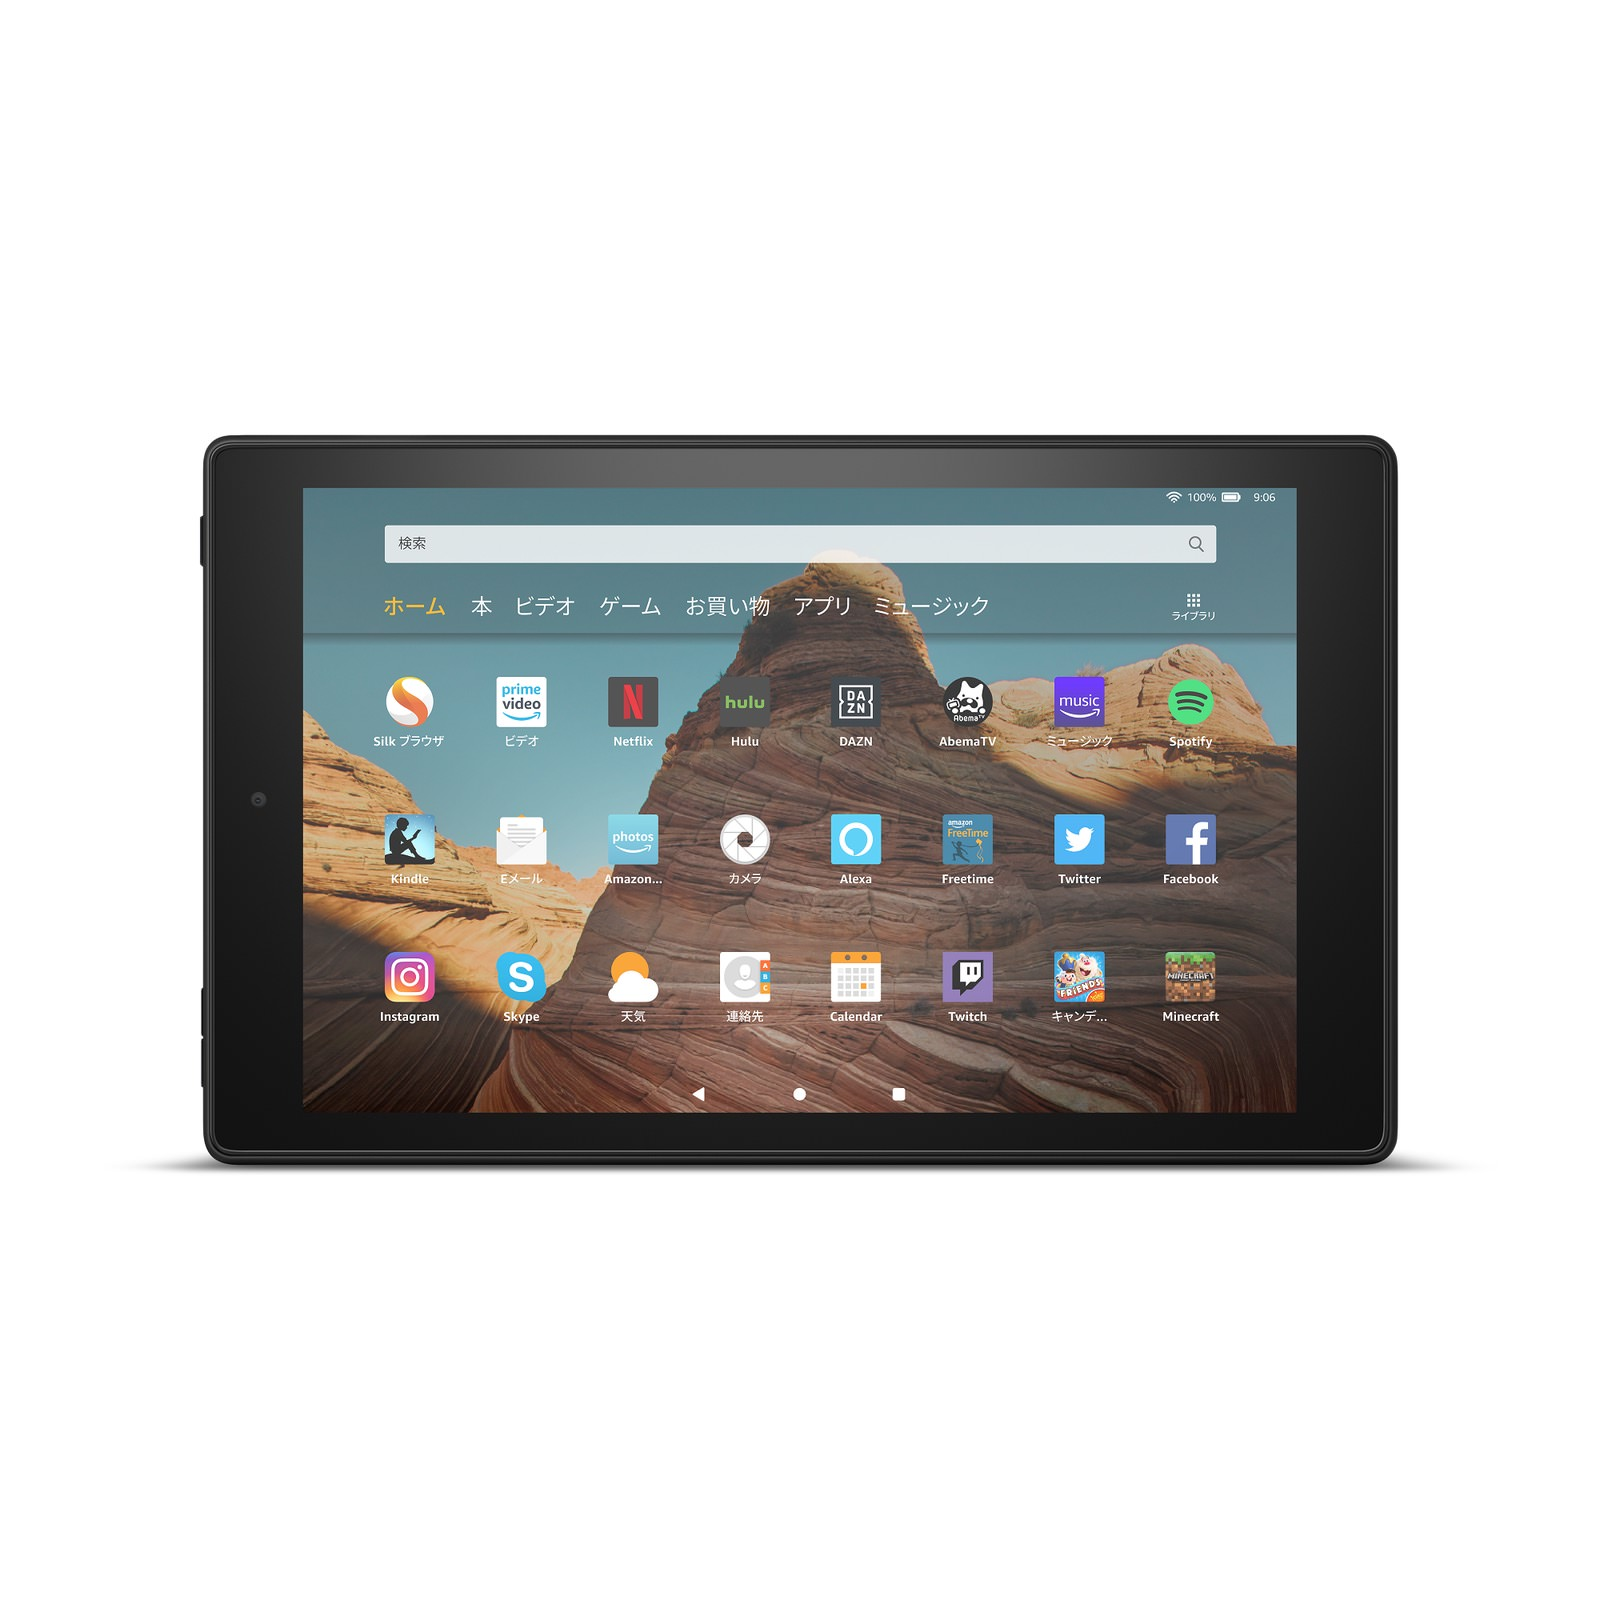 Fire-HD-10-Tablet-New-Model-04.jpg